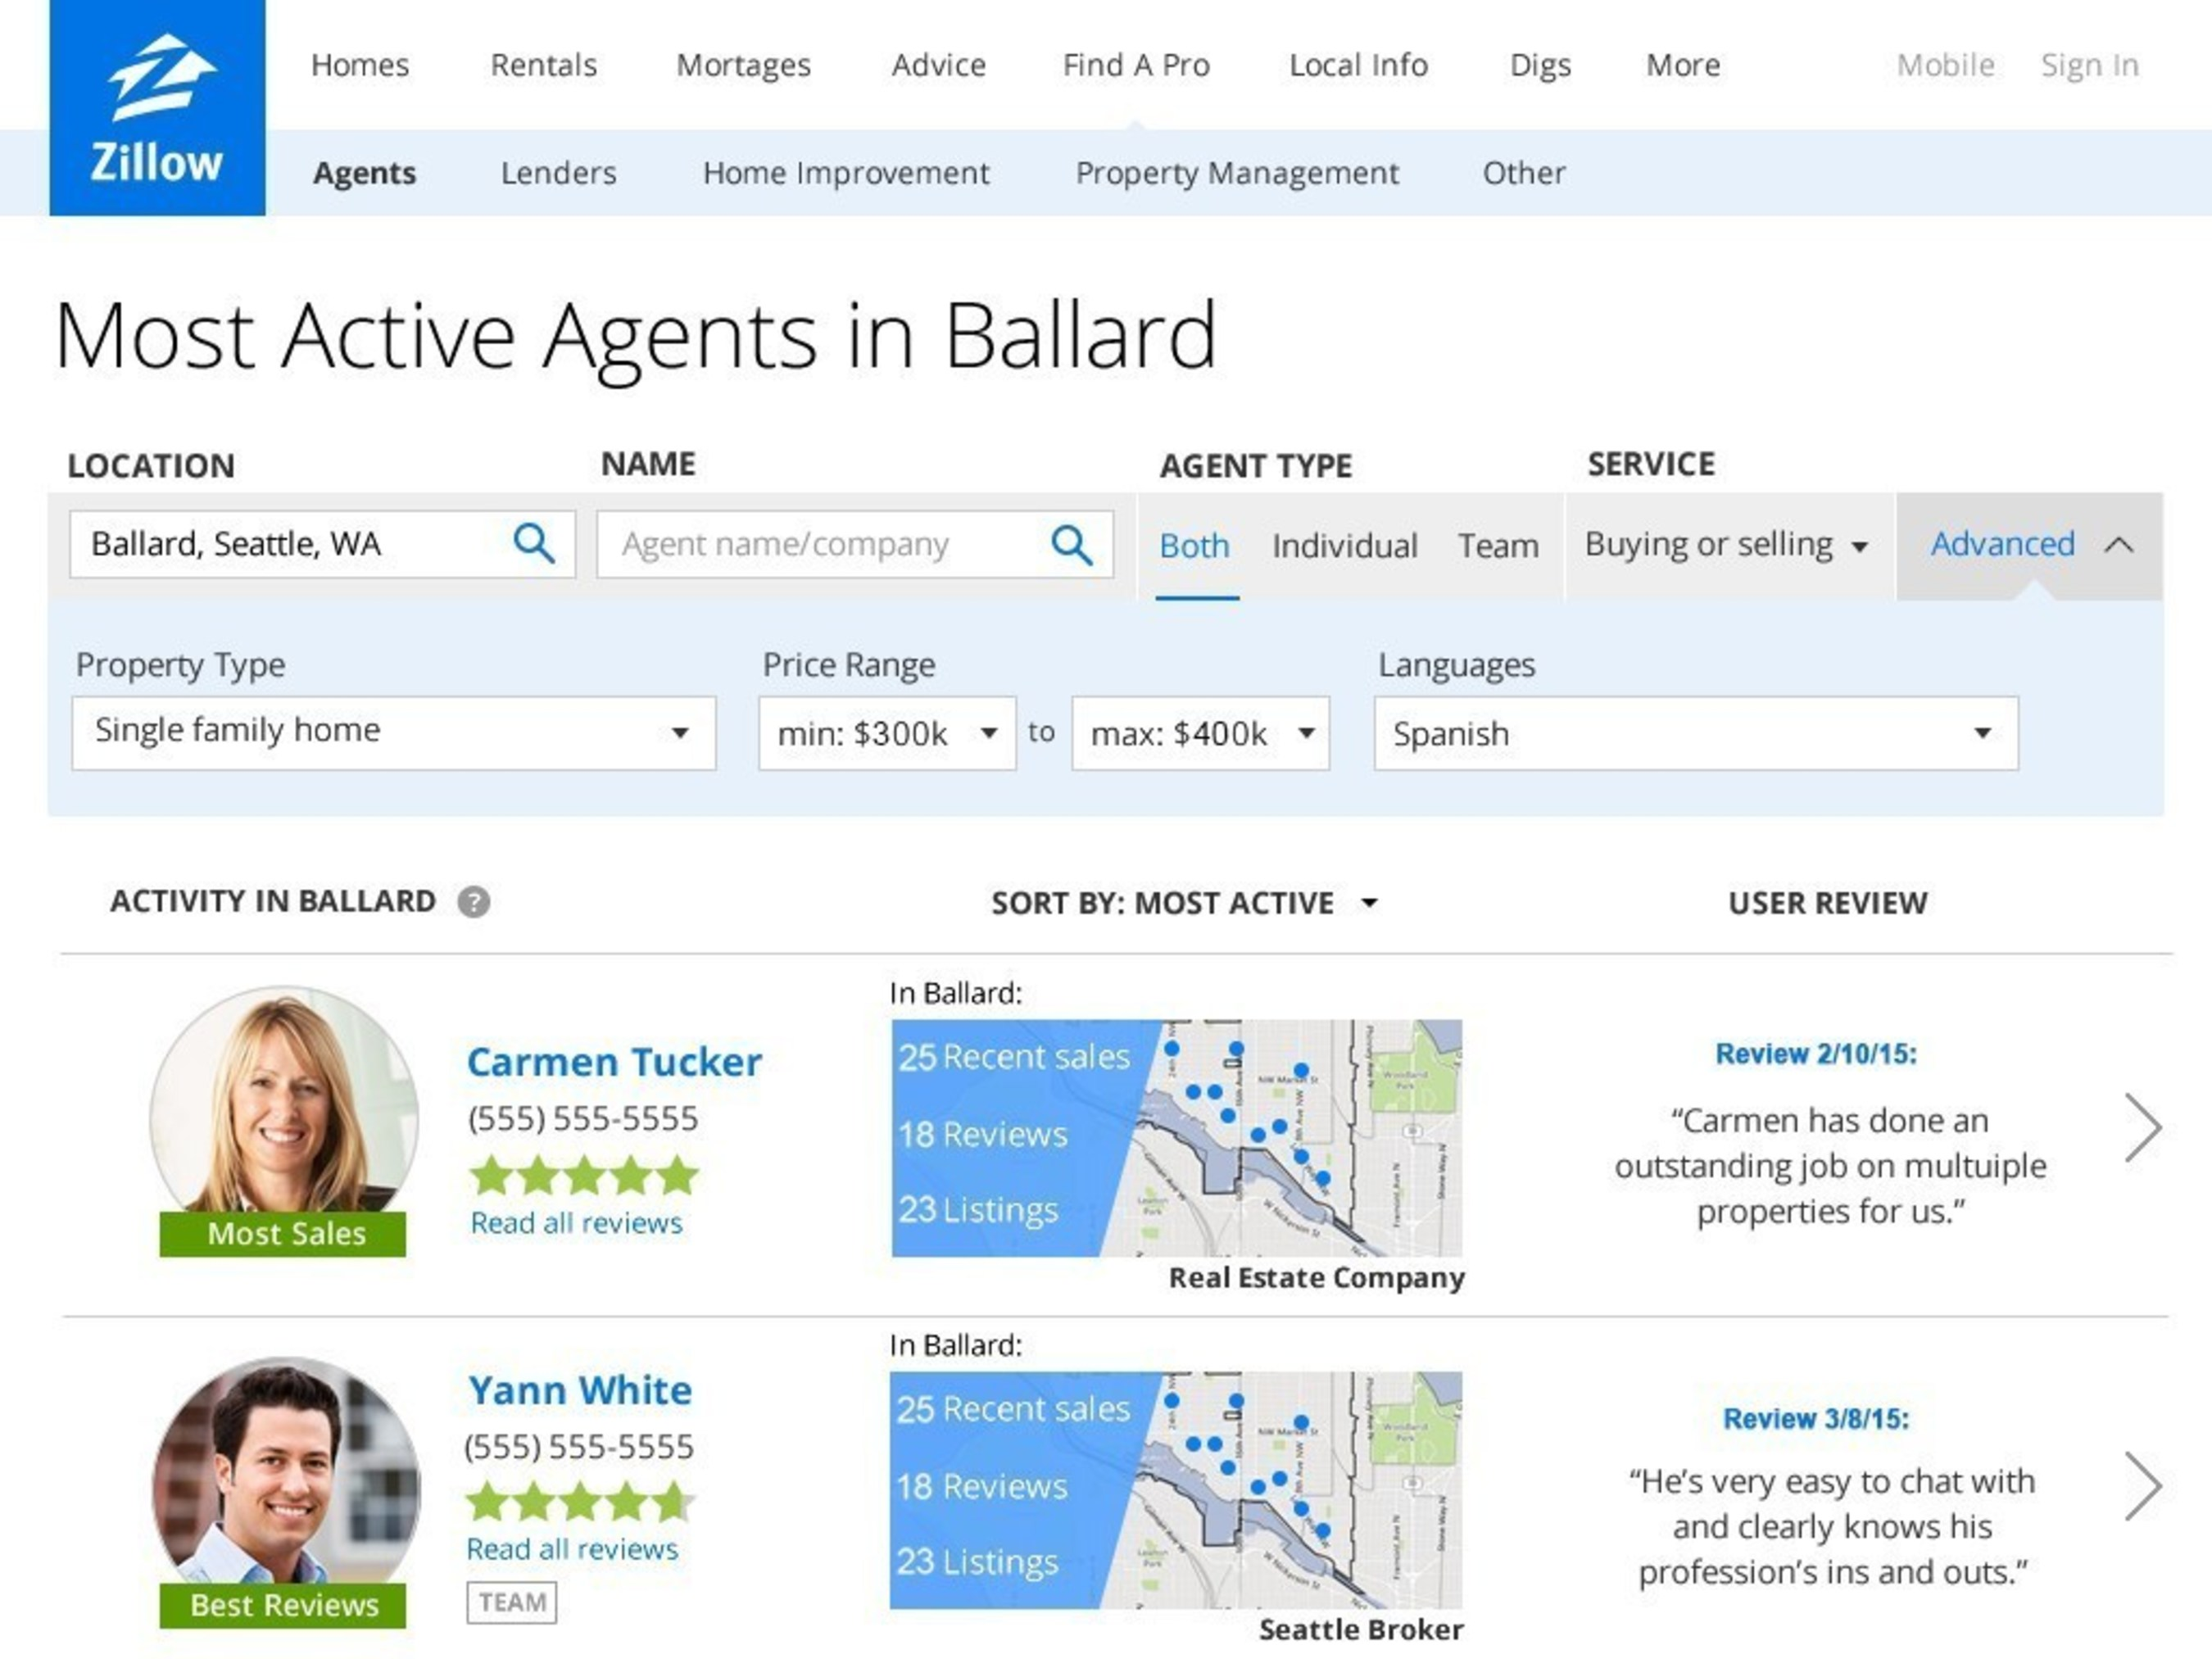 Zillow Launches Agent Finder, New Way for Home Shoppers to Find Most Active, Reputable Agents in Their Desired Neighborhood